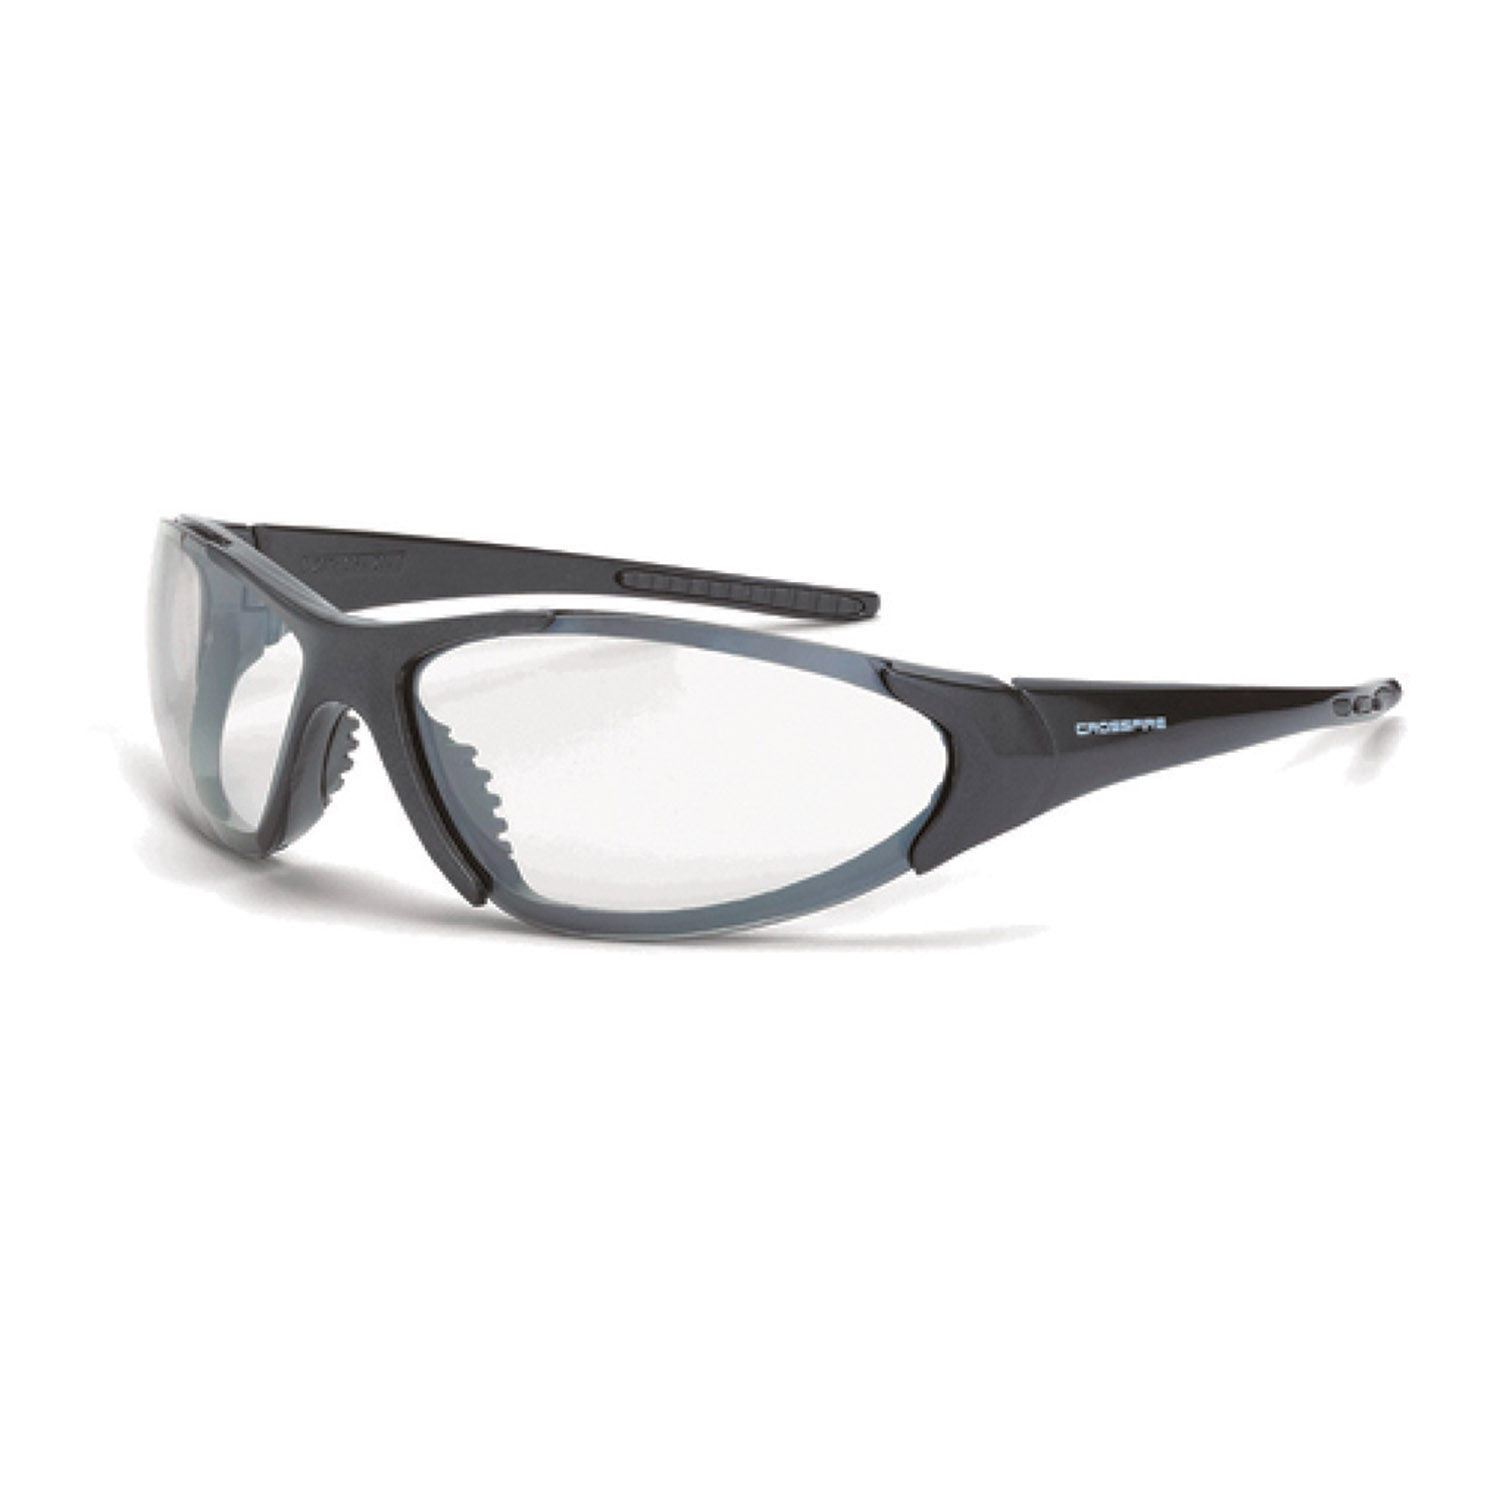 Crossfire Safety Core Eyewear